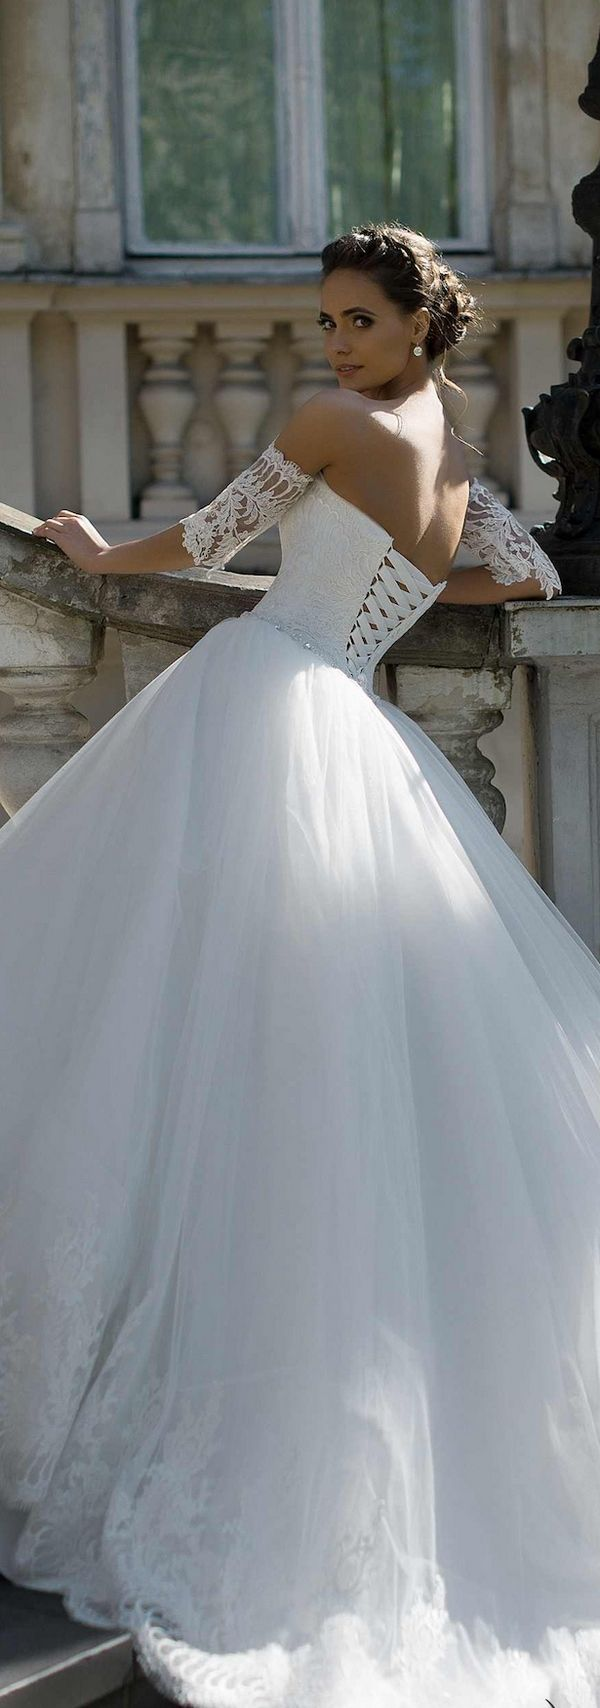 212 best one day images on Pinterest   Wedding inspiration, Groom ...